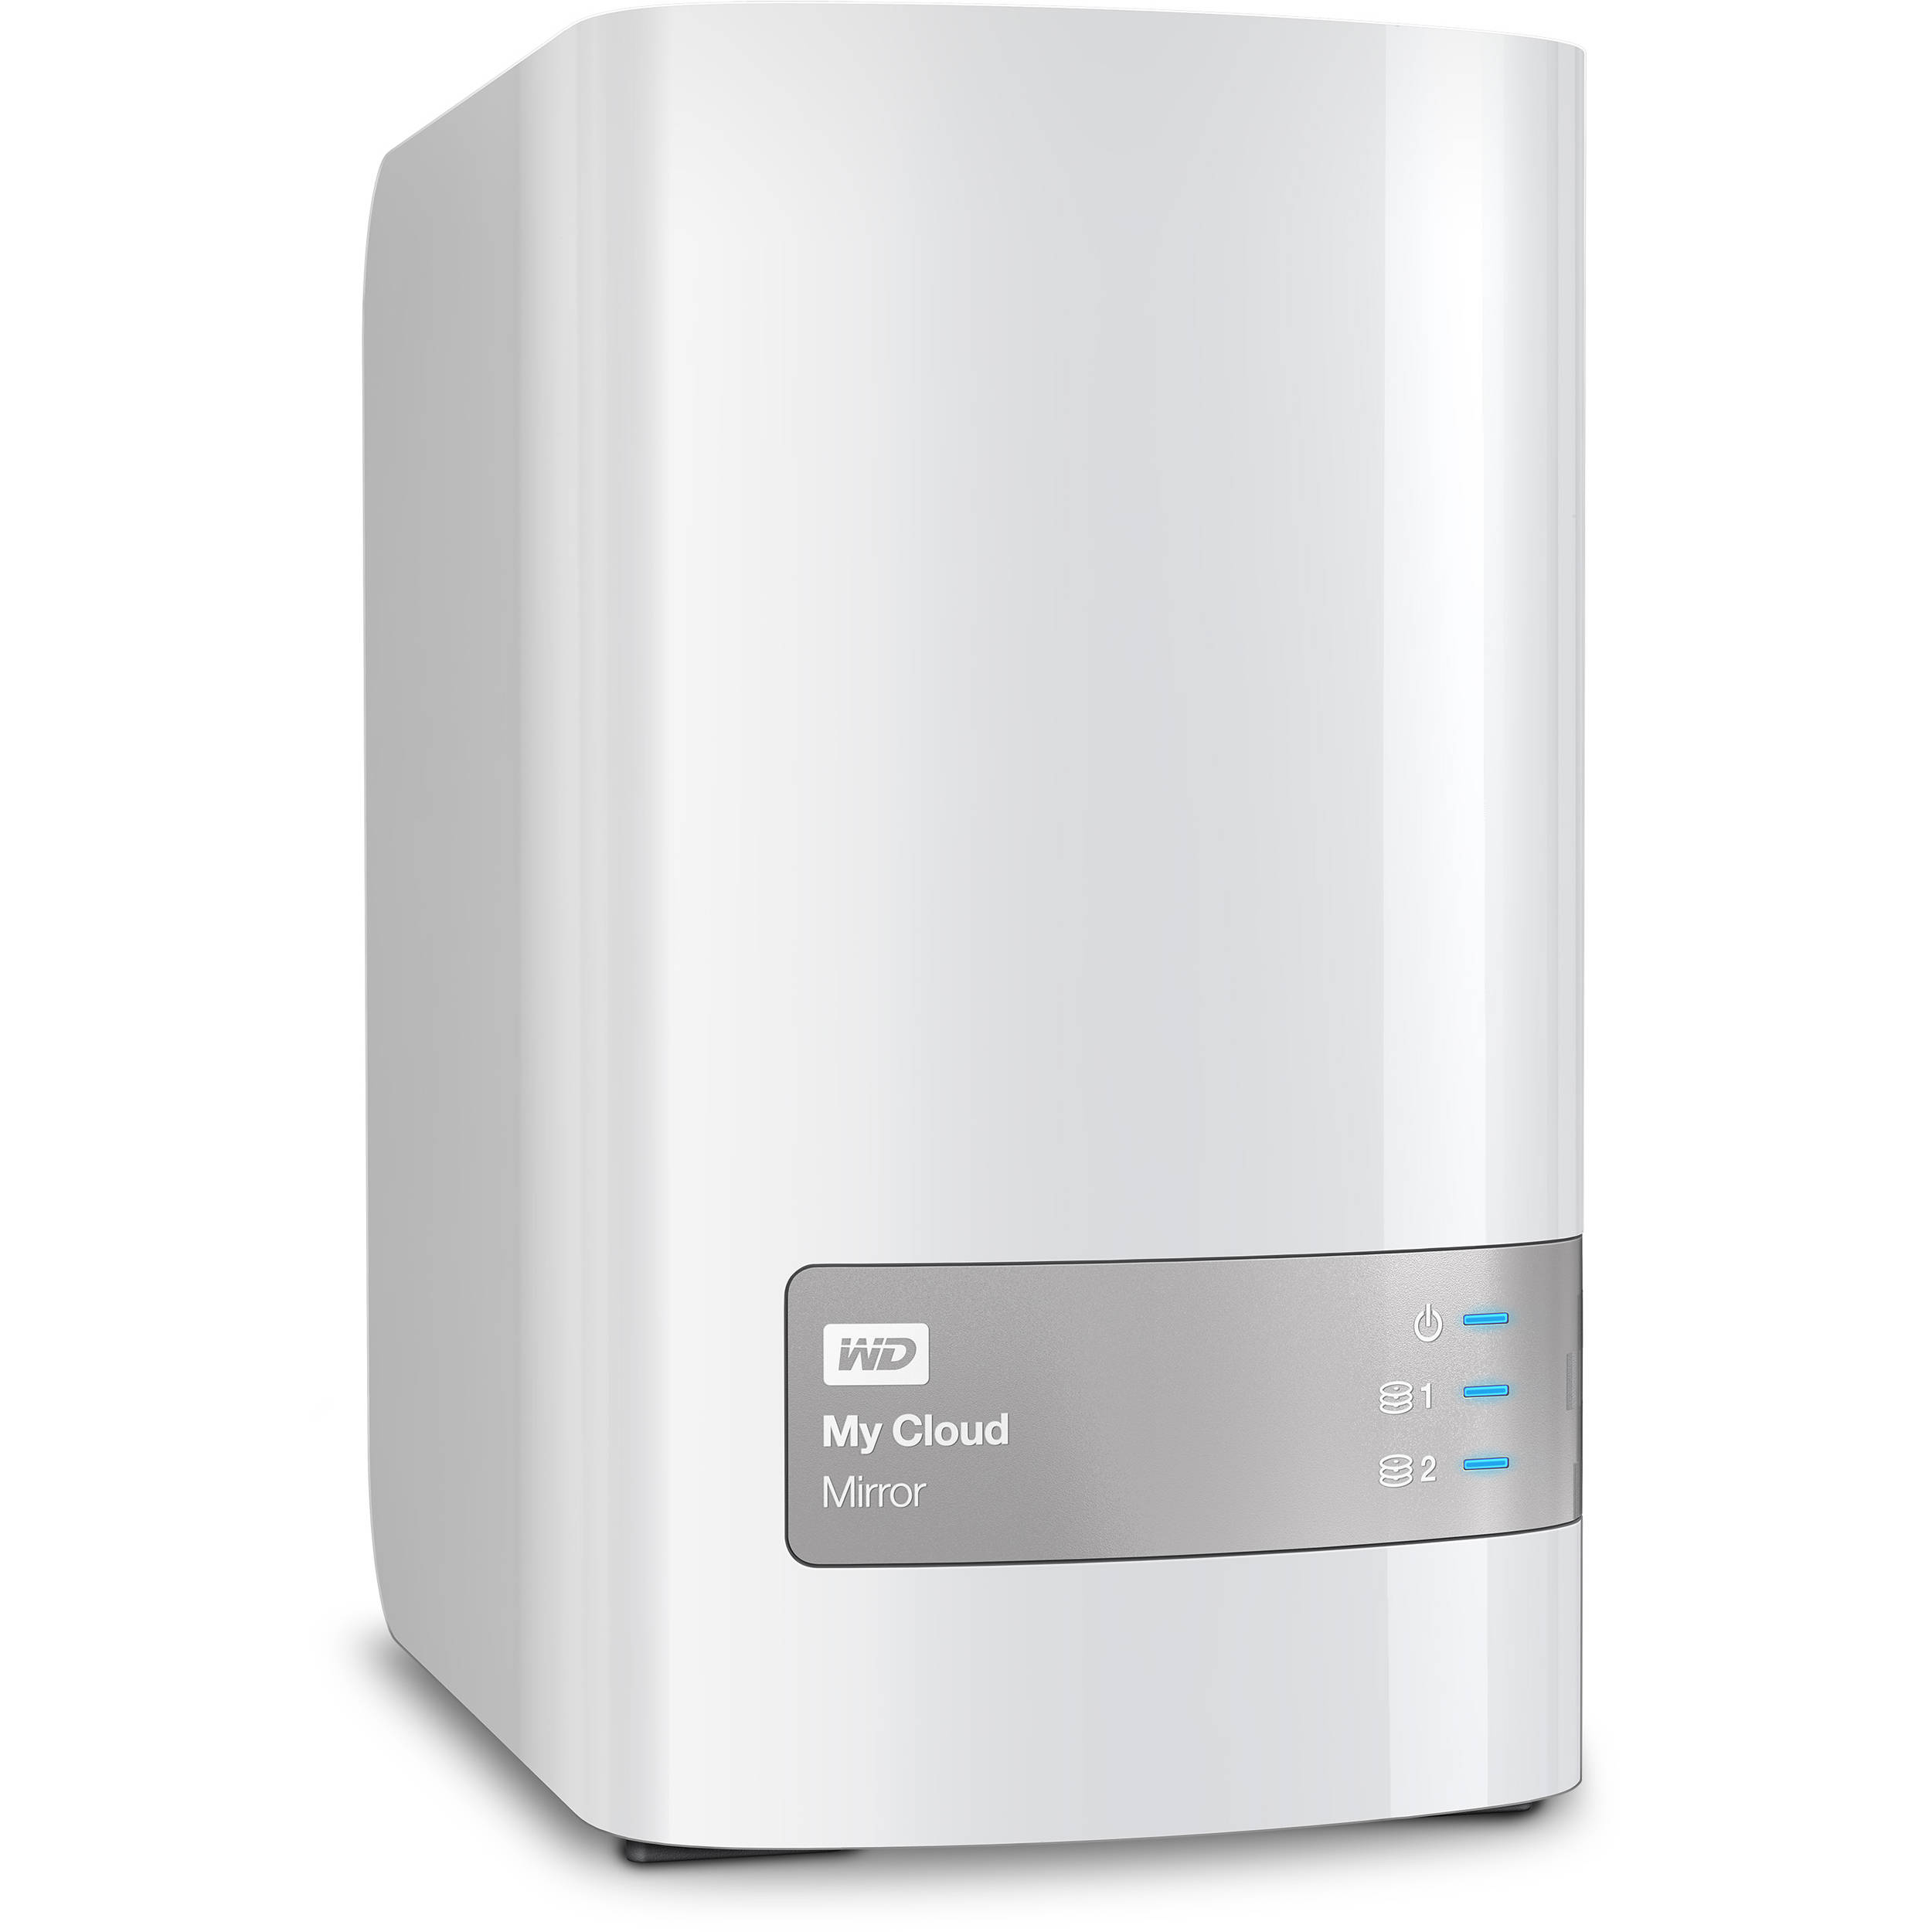 Wd My Cloud Mirror Gen 2 8tb 2 Bay Nas Wdbwvz0080jwt